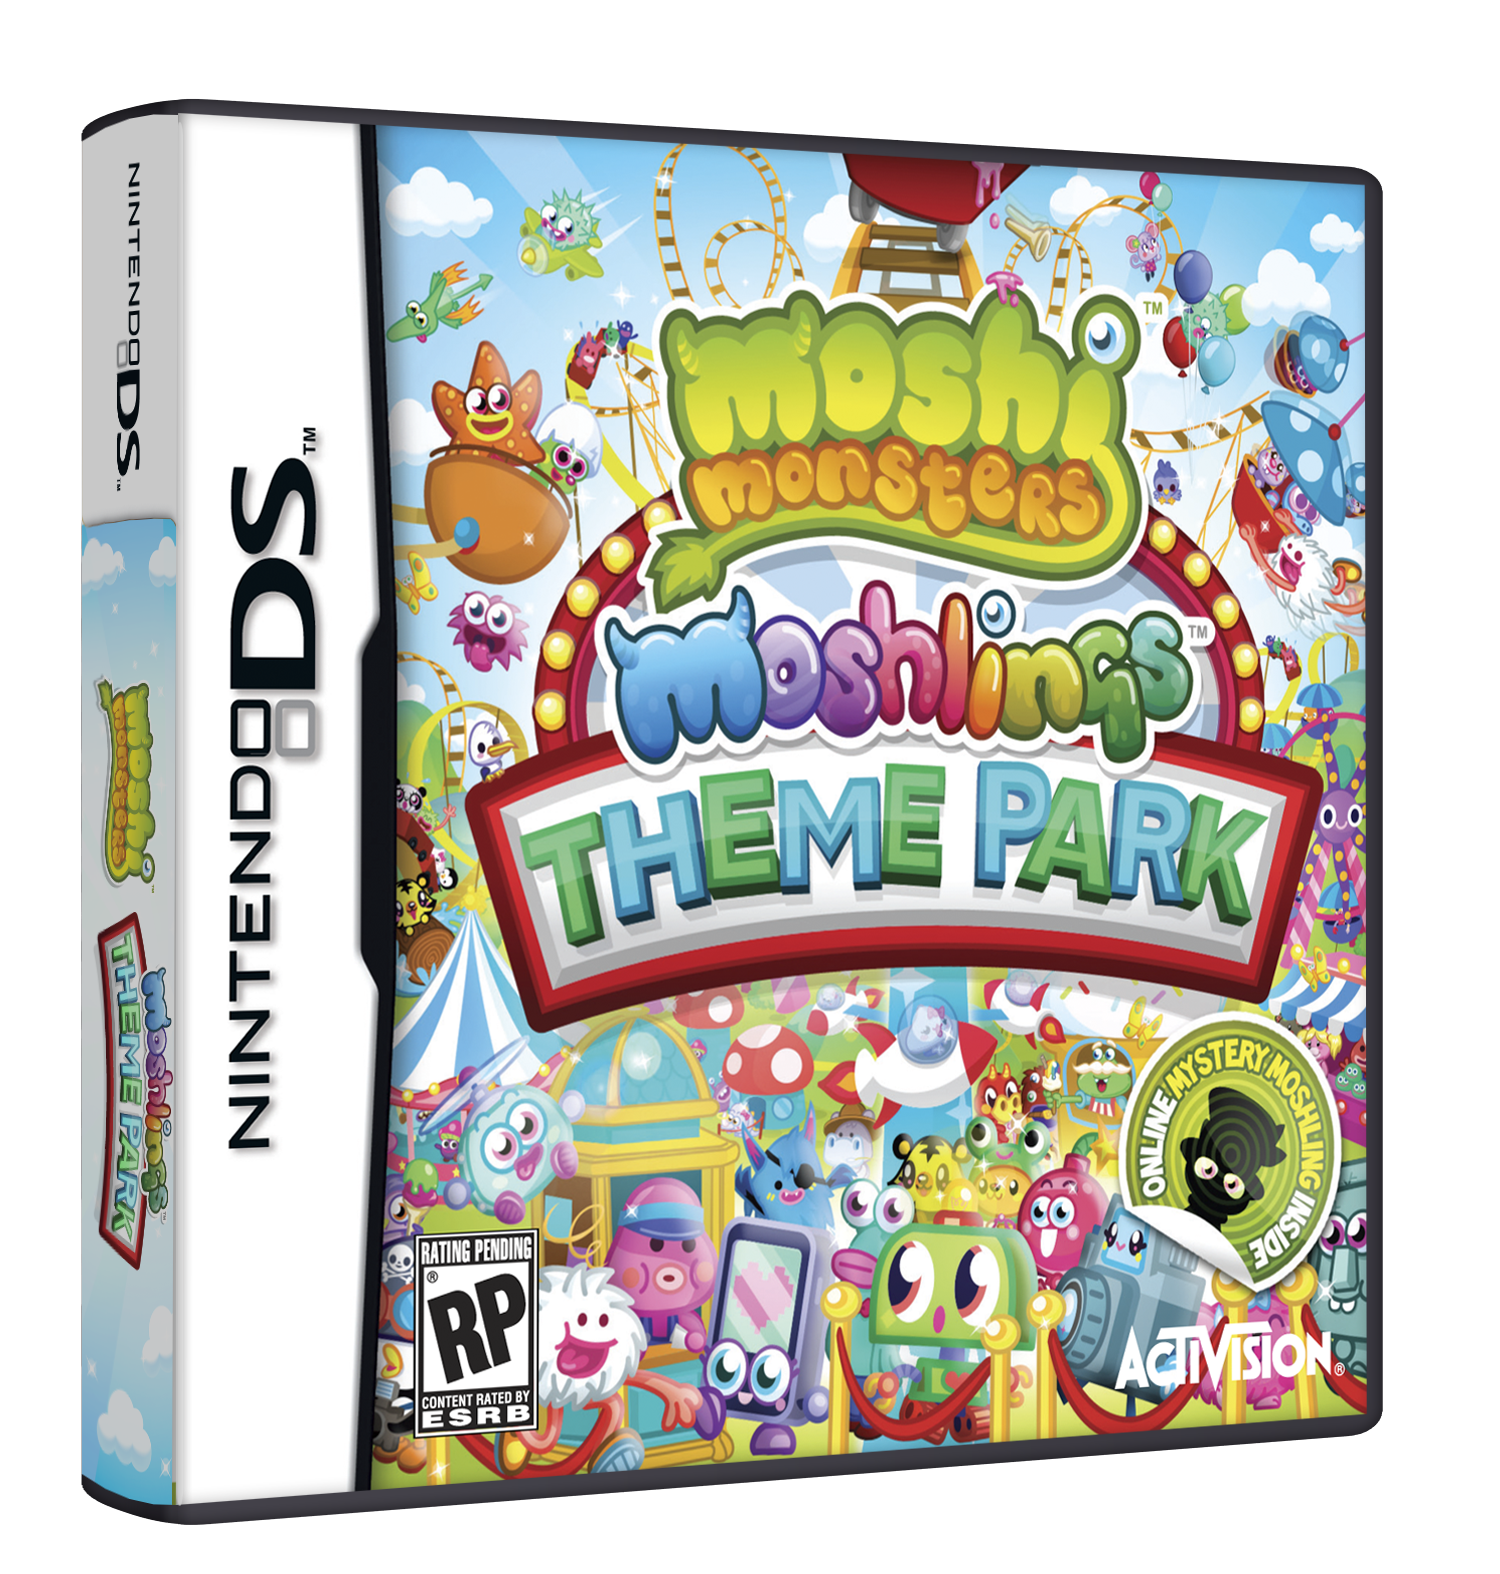 Build a Moshling Theme Park on your 3DS this October